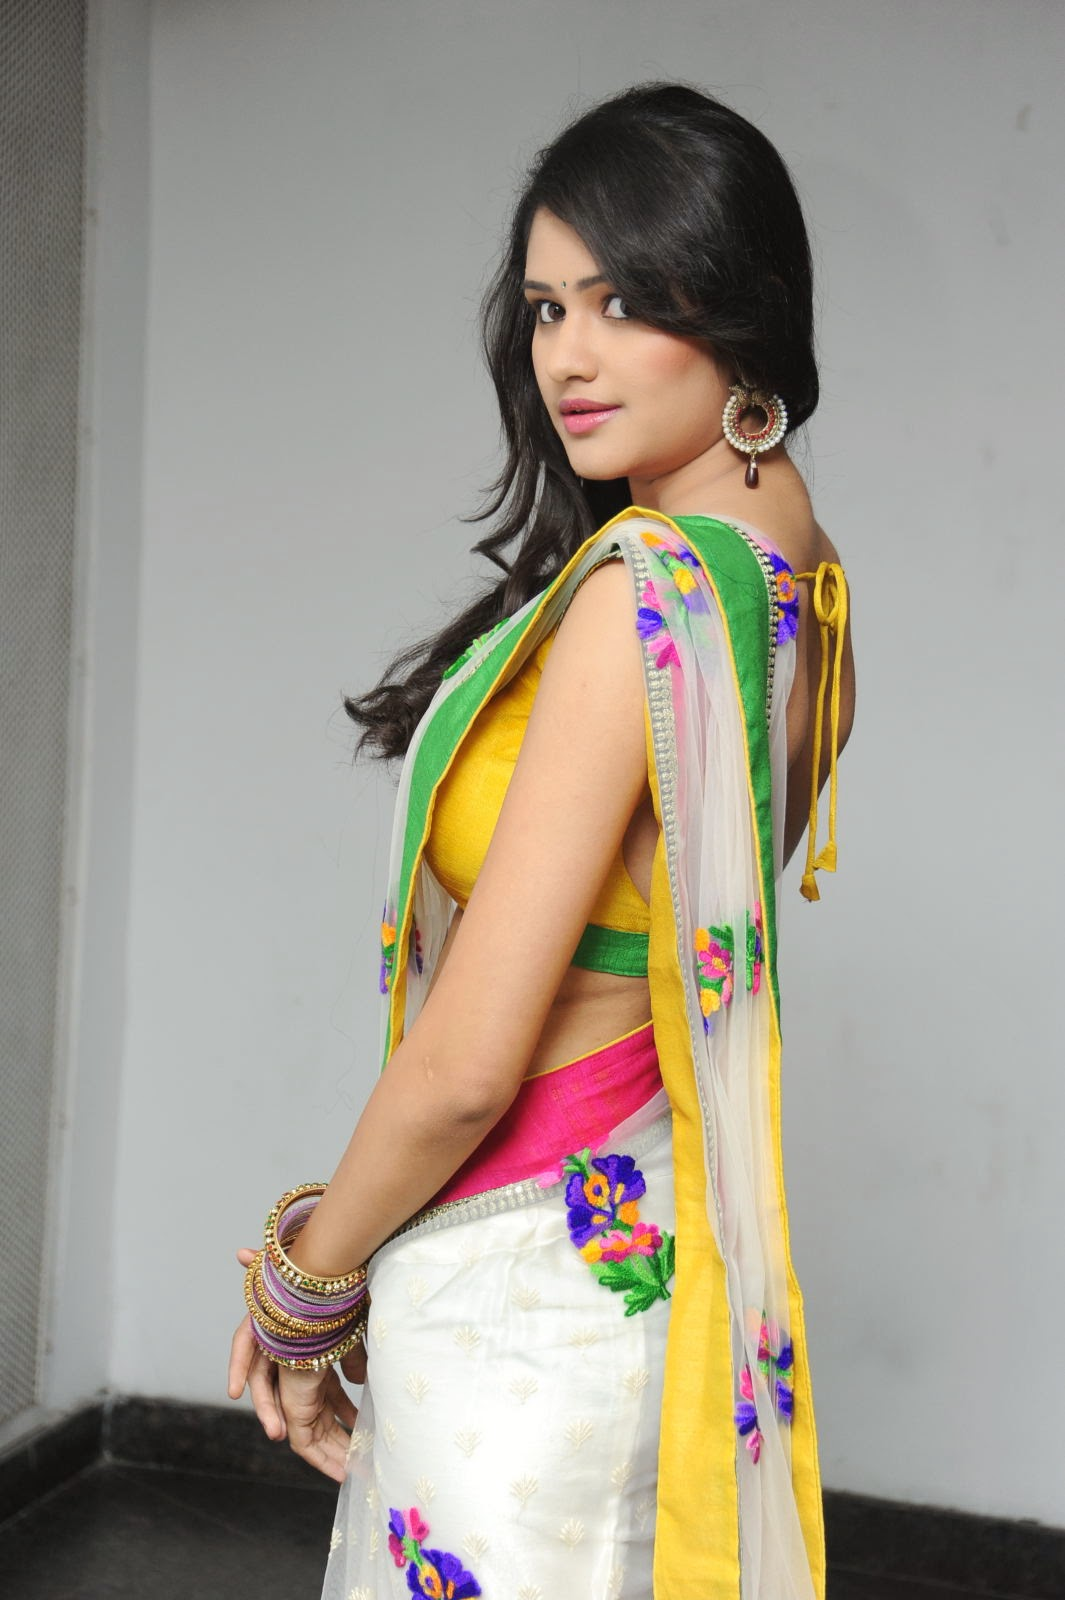 Kushi glamorous saree photos-HQ-Photo-15